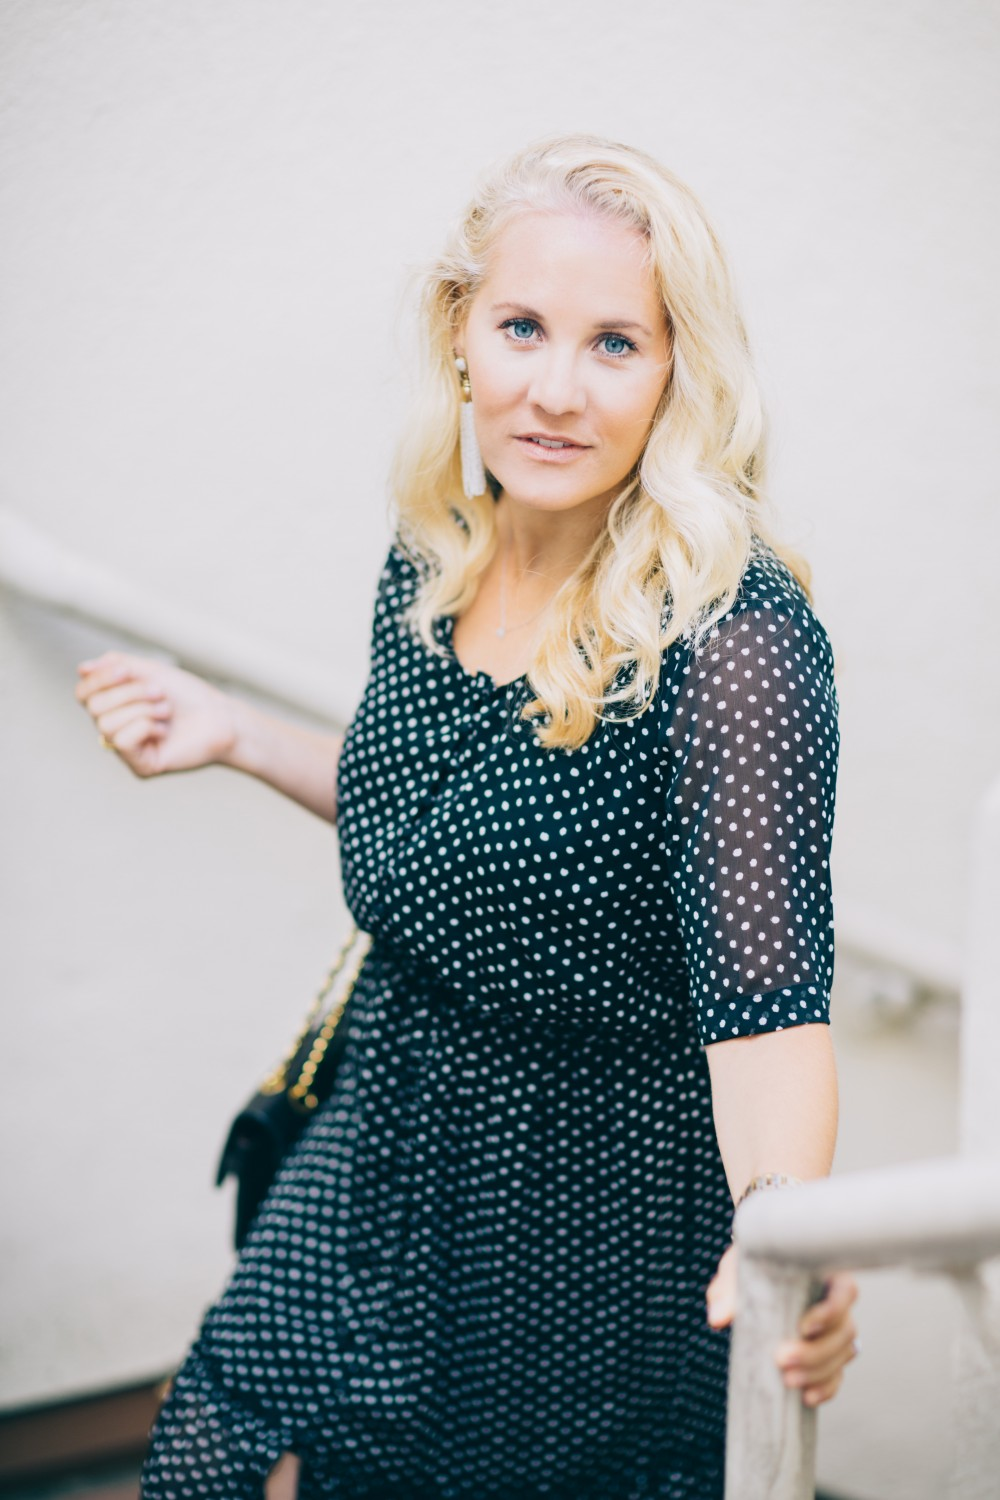 Black and White Polka Dot Maxi Dress-Who What Wear for Target-Target Maxi Dress-Polka Dot Dress-Outfit Inspiration-Bay Area Fashion Blogger-Have Need Want 8